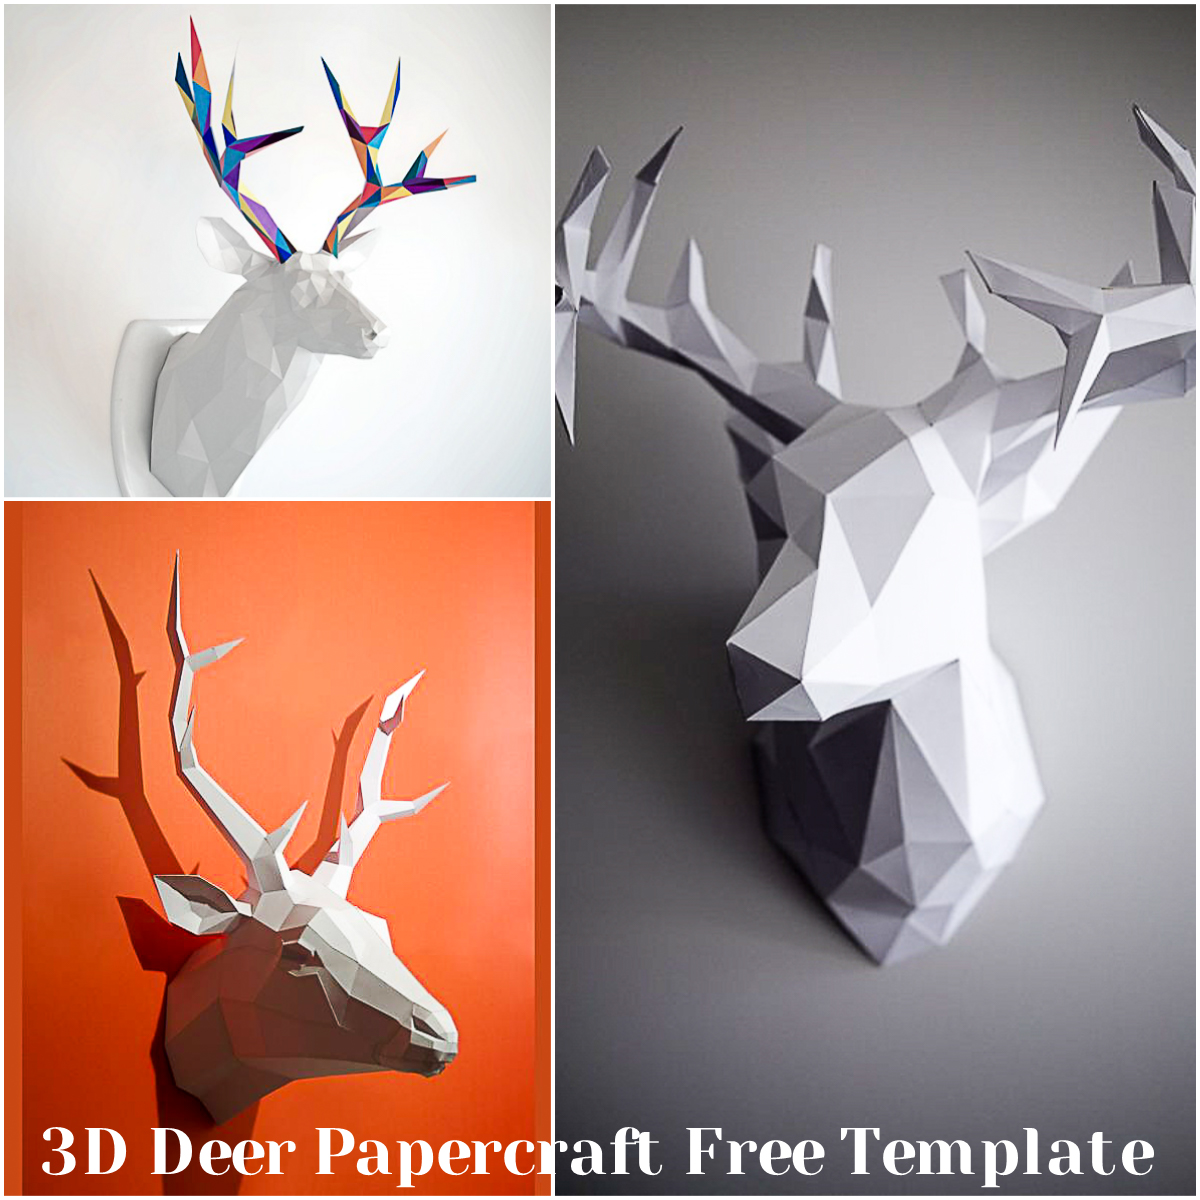 3D ORIGAMI STEP BY STEP ILLUSTRATIONS II.pdf | Paper Folding ... | 1200x1200